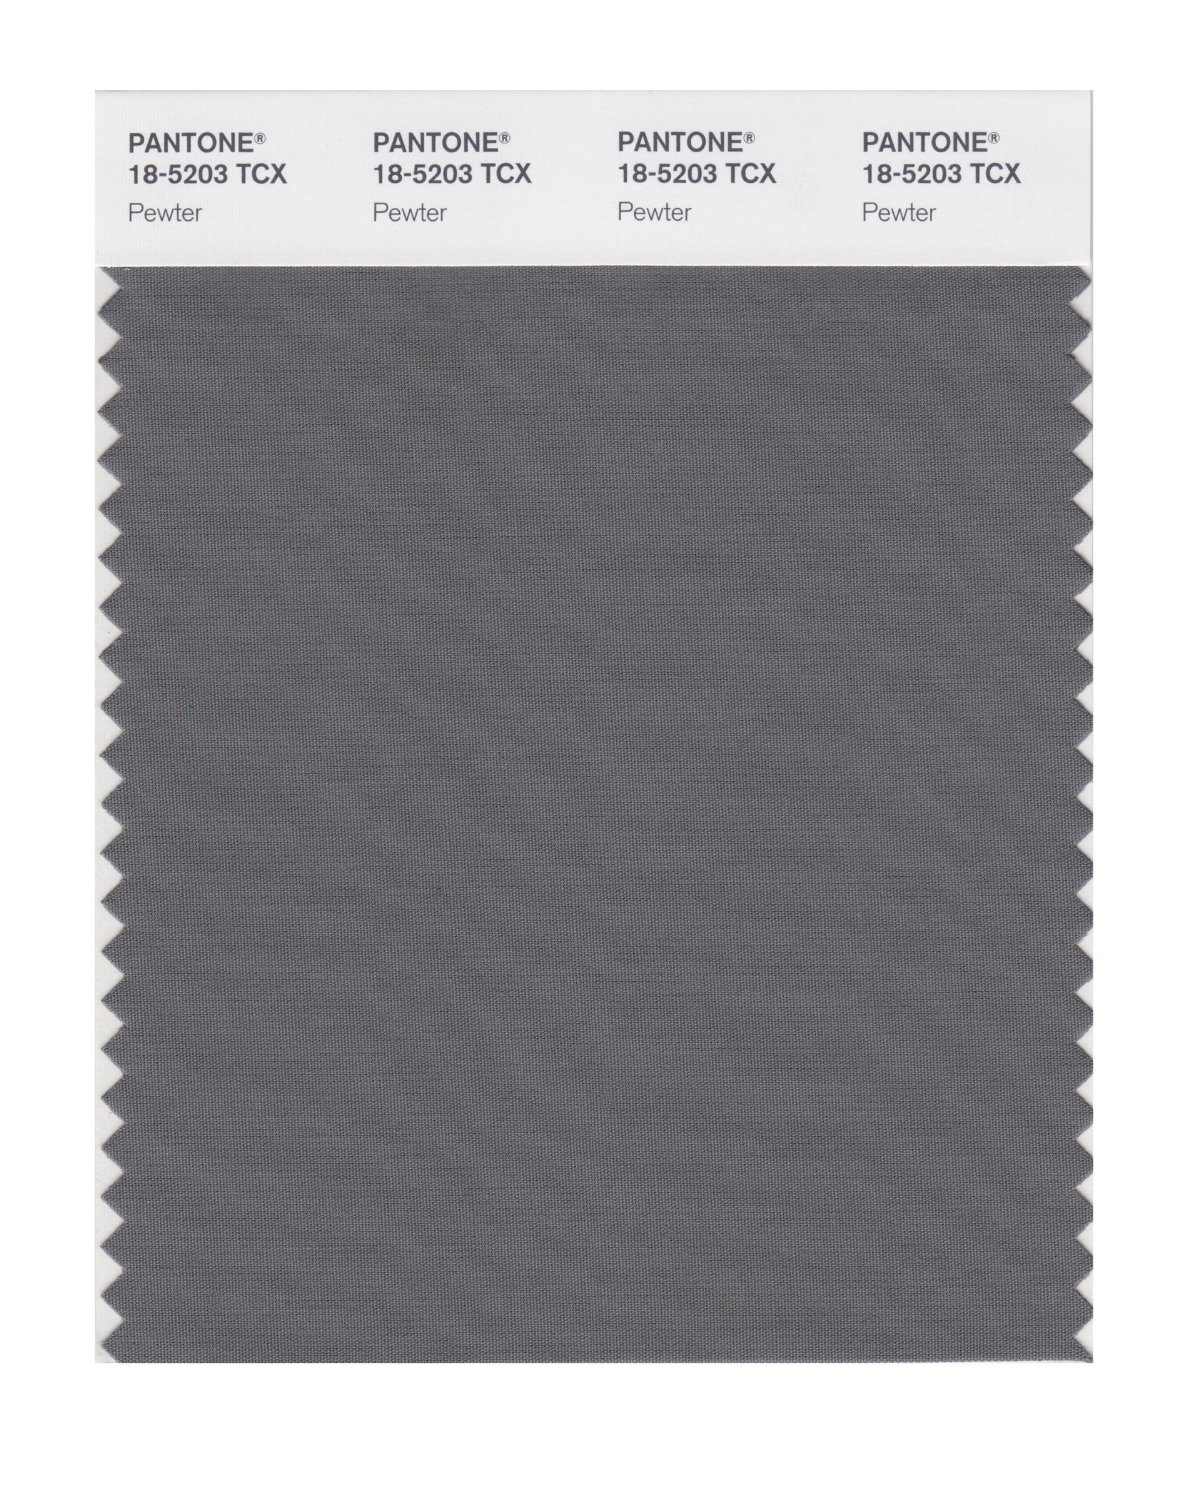 Pantone Smart Swatch 18-5203 Pewter